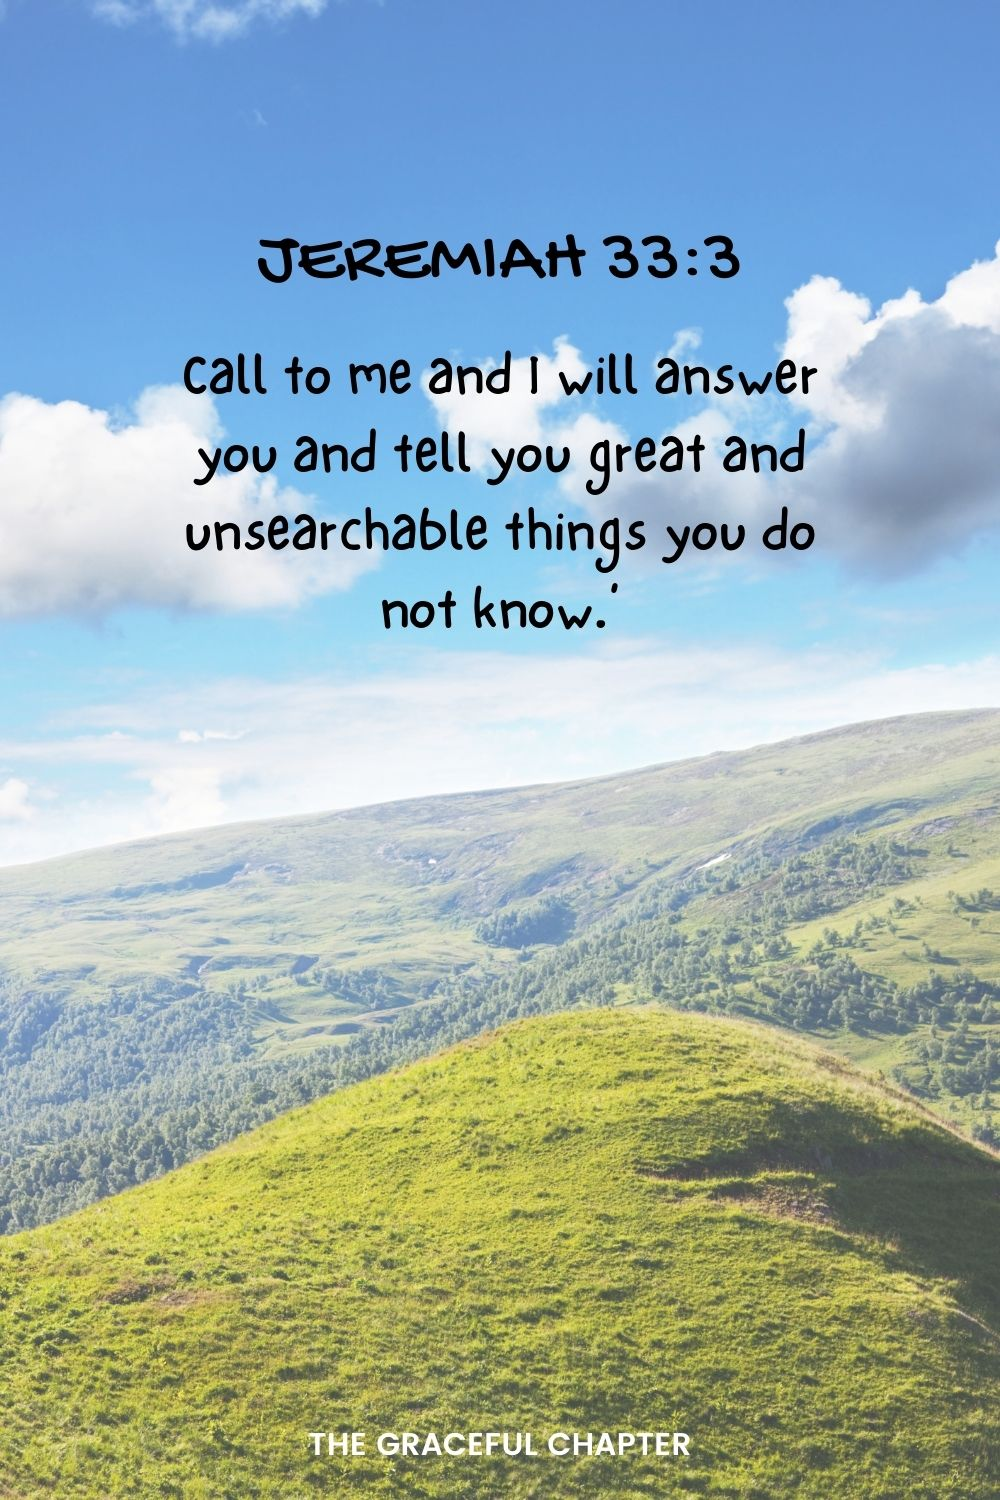 Call to me and I will answer you and tell you great and unsearchable things you do not know.' Jeremiah 33:3